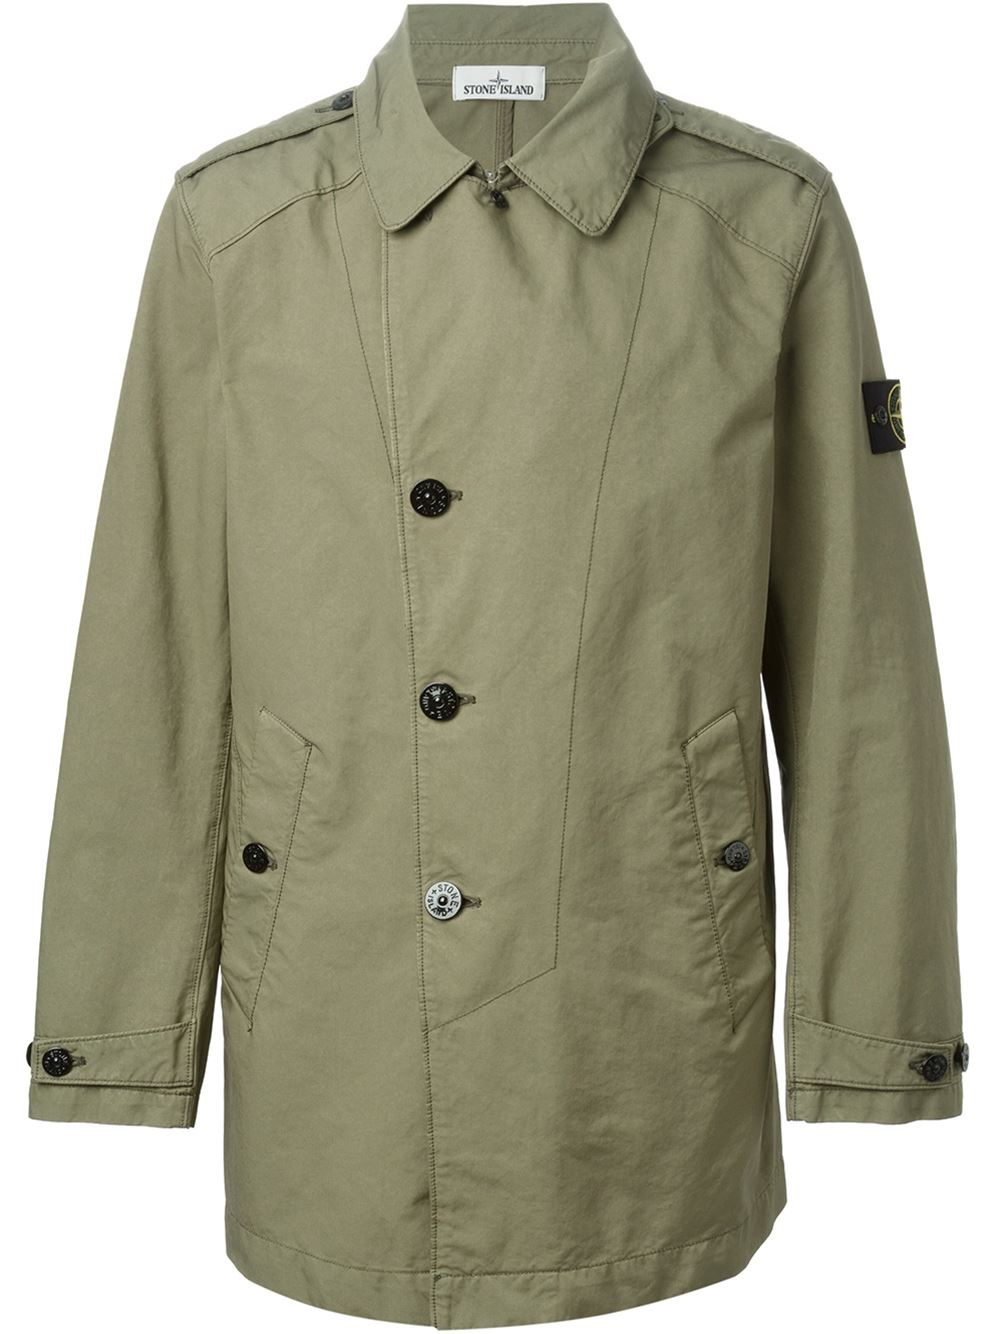 Stone island Military Jacket in Green for Men - Lyst